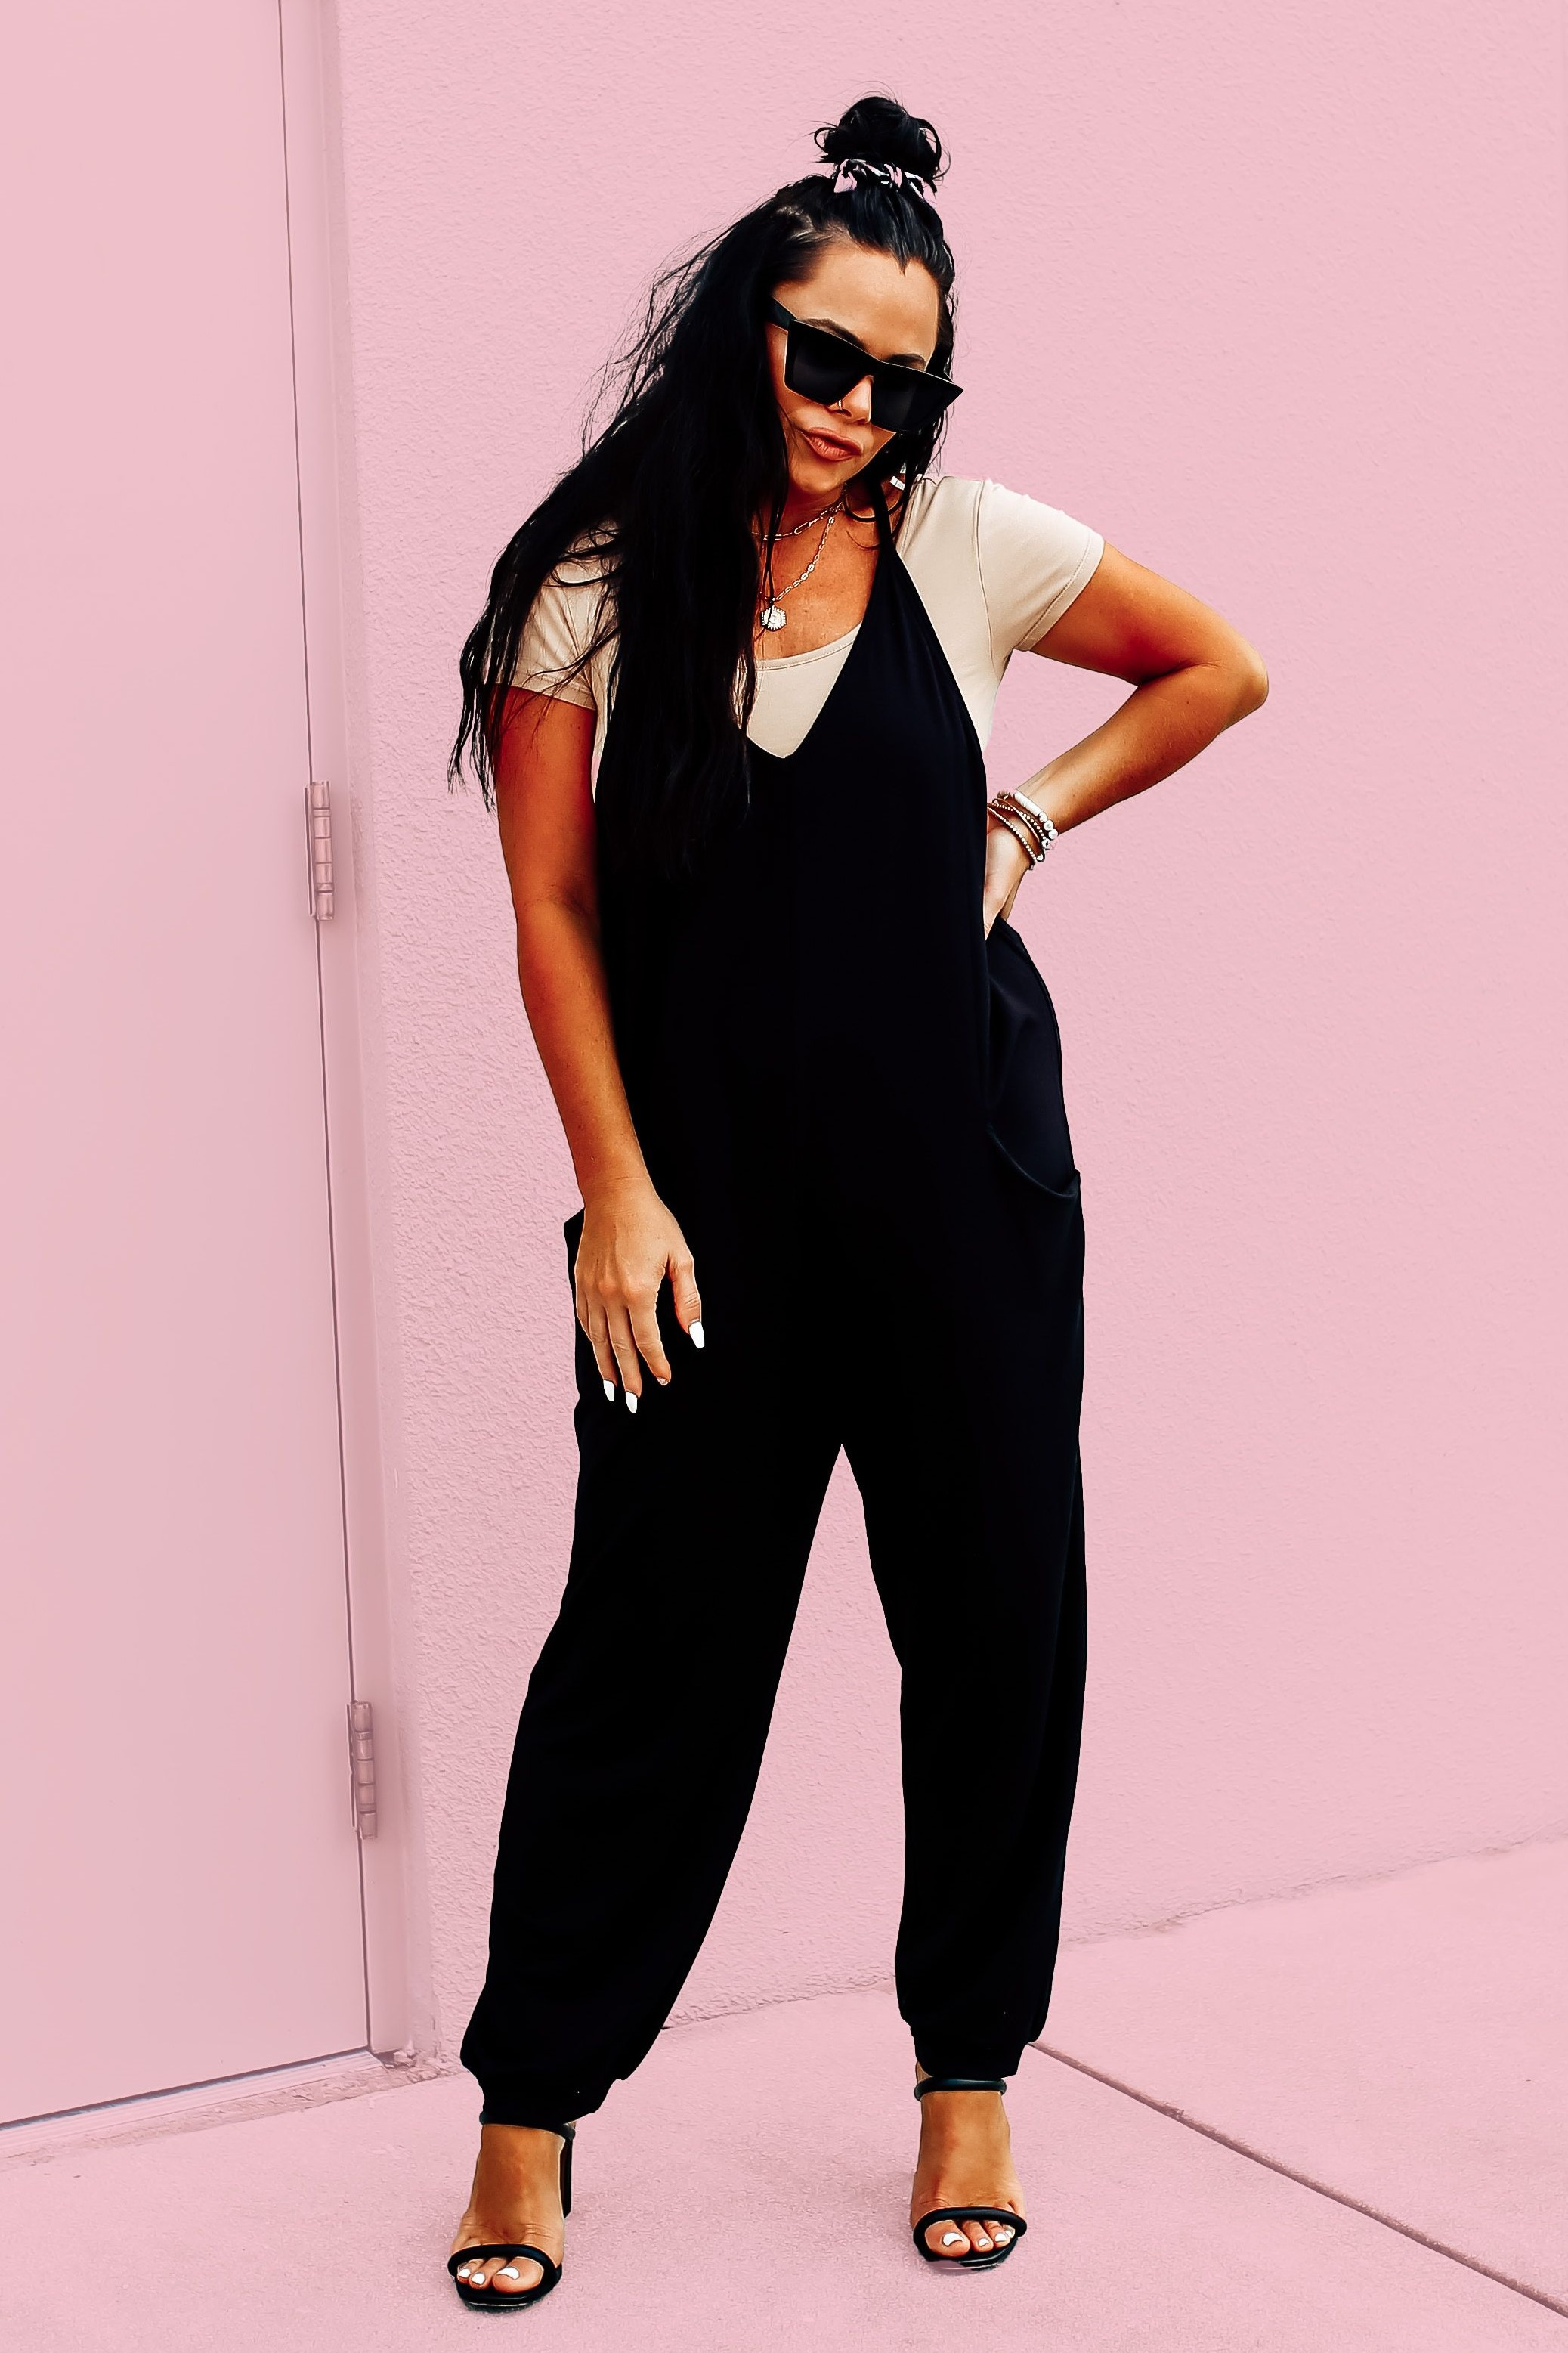 EXCLUSIVE TO MAVERICK! SLEEVELESS BLACK JUMPSUIT. OVERSIZED BOHO STYLE. V-NECK CUT, FUNCTIONAL SIDE POCKETS. LOOSE CUFFED ANKLE. VERY SOFT AND STRECHY. 95% POLYESTER, 5% SPANDEX.